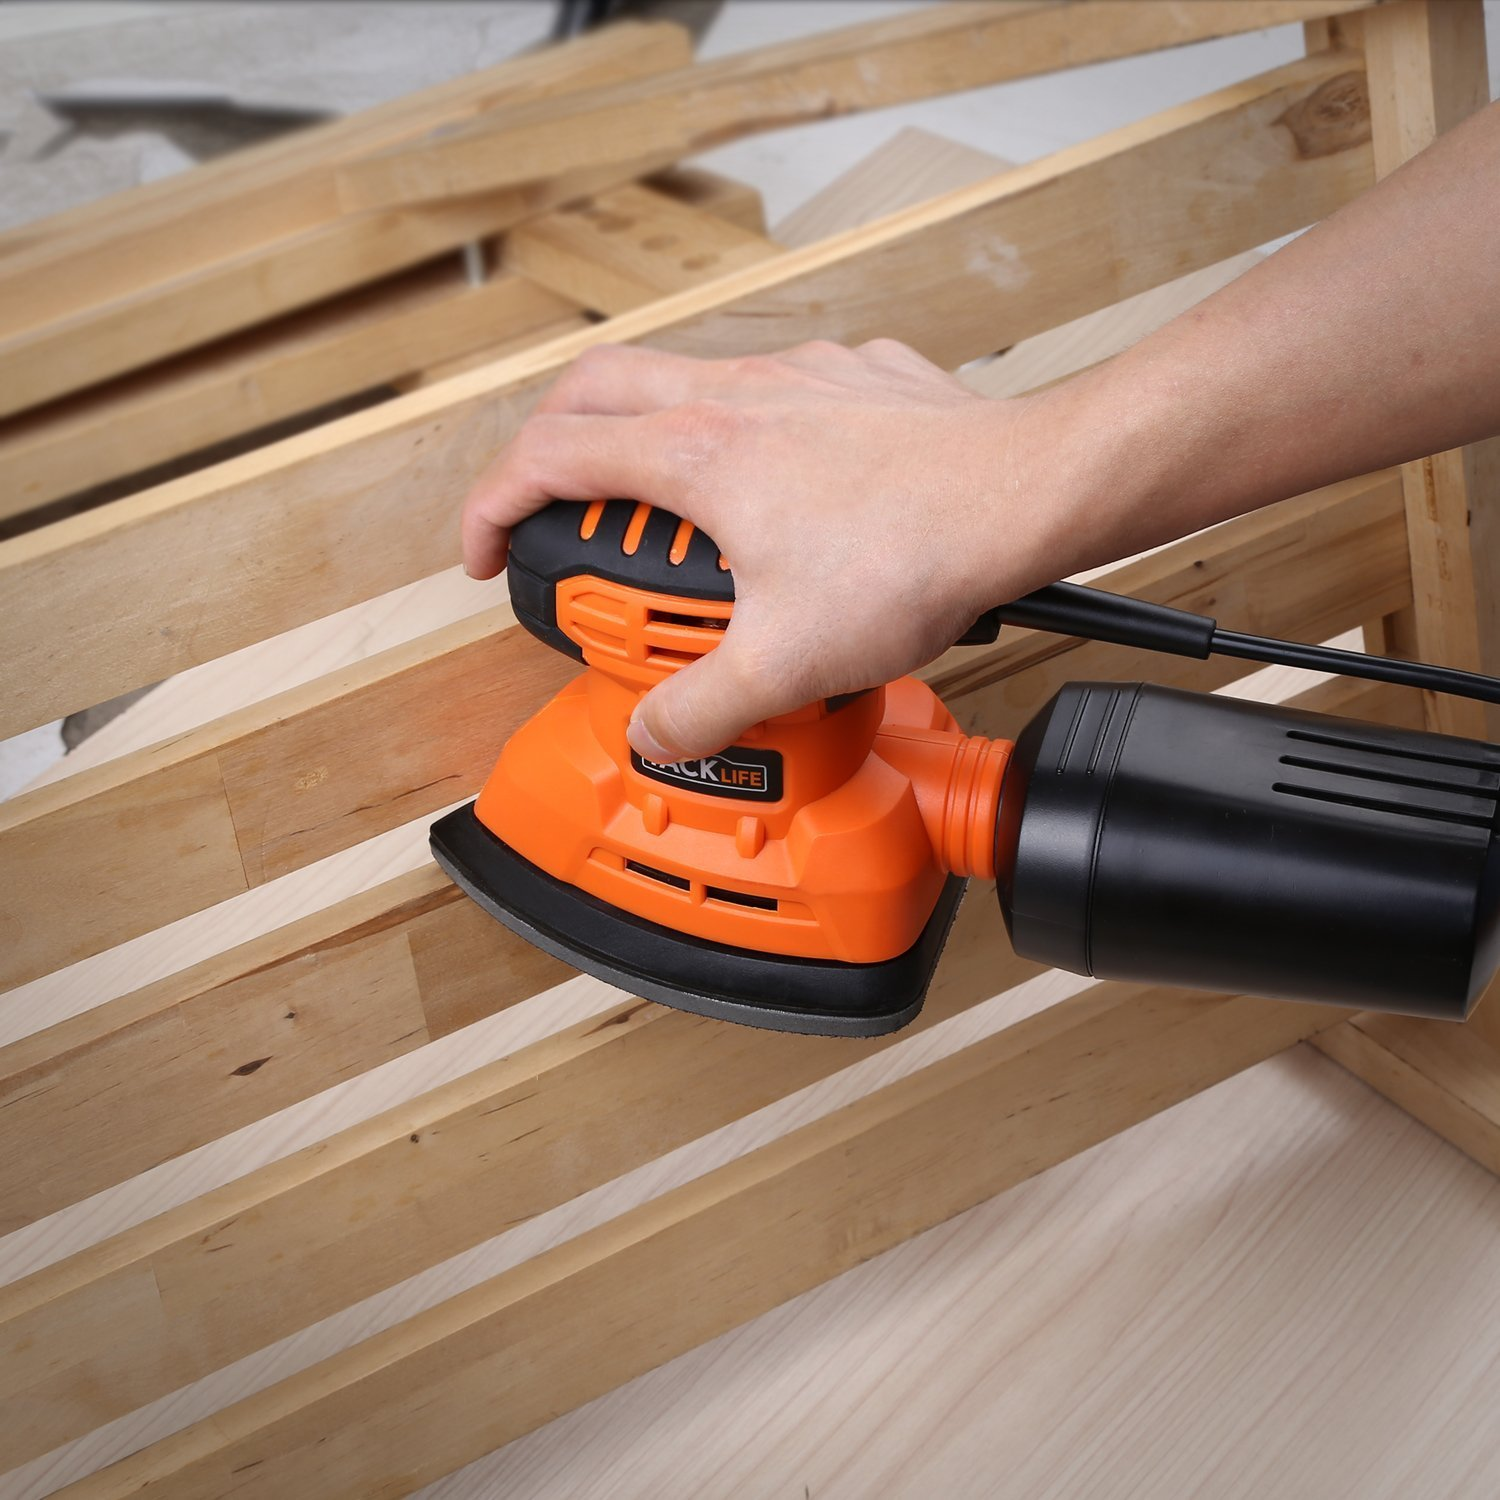 Mouse Detail Sander with 12Pcs Sanderpaper, 12000 OPM Sander with Dust Collection System For Tight Spaces Sanding in Home Decoration, DIY by TACKLIFE (Image #6)